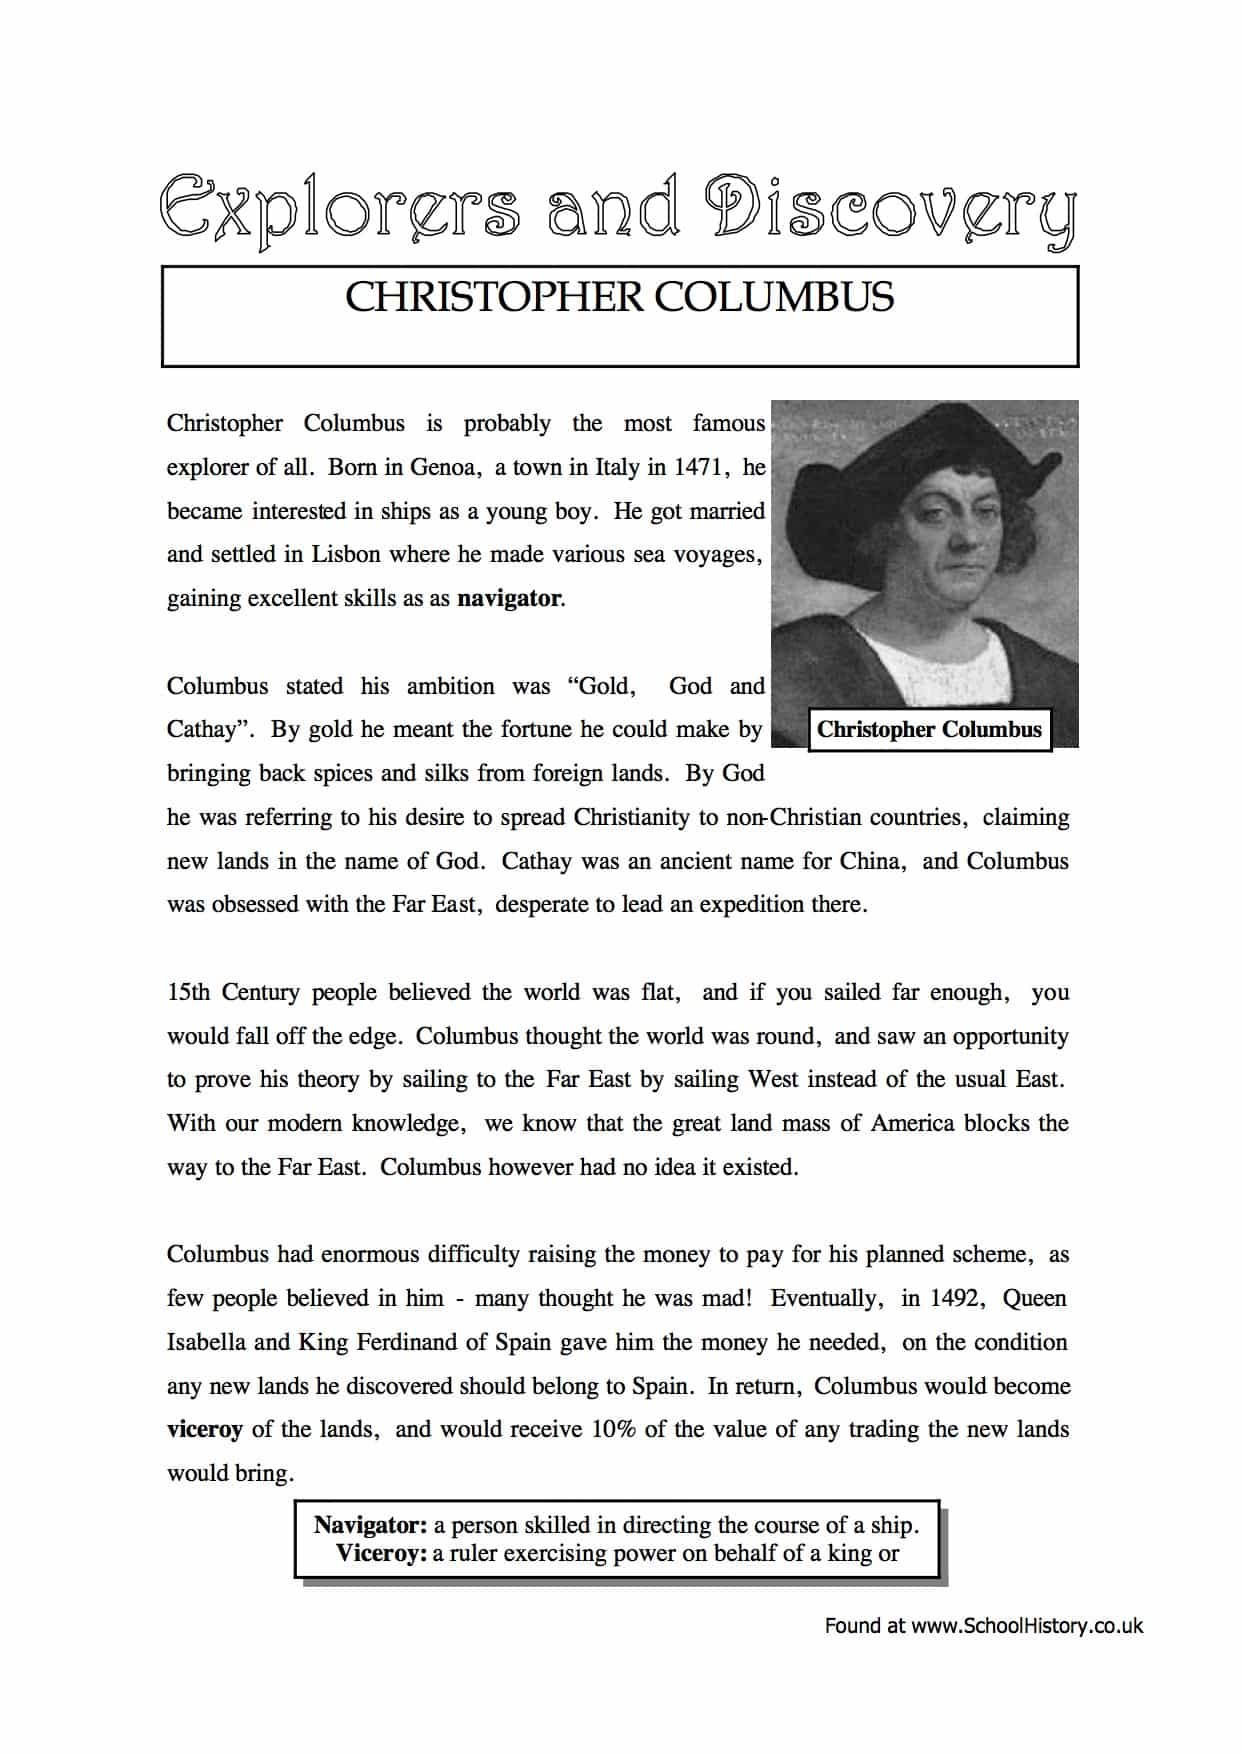 Christopher Columbus Facts & Information Worksheet - Year 8/9